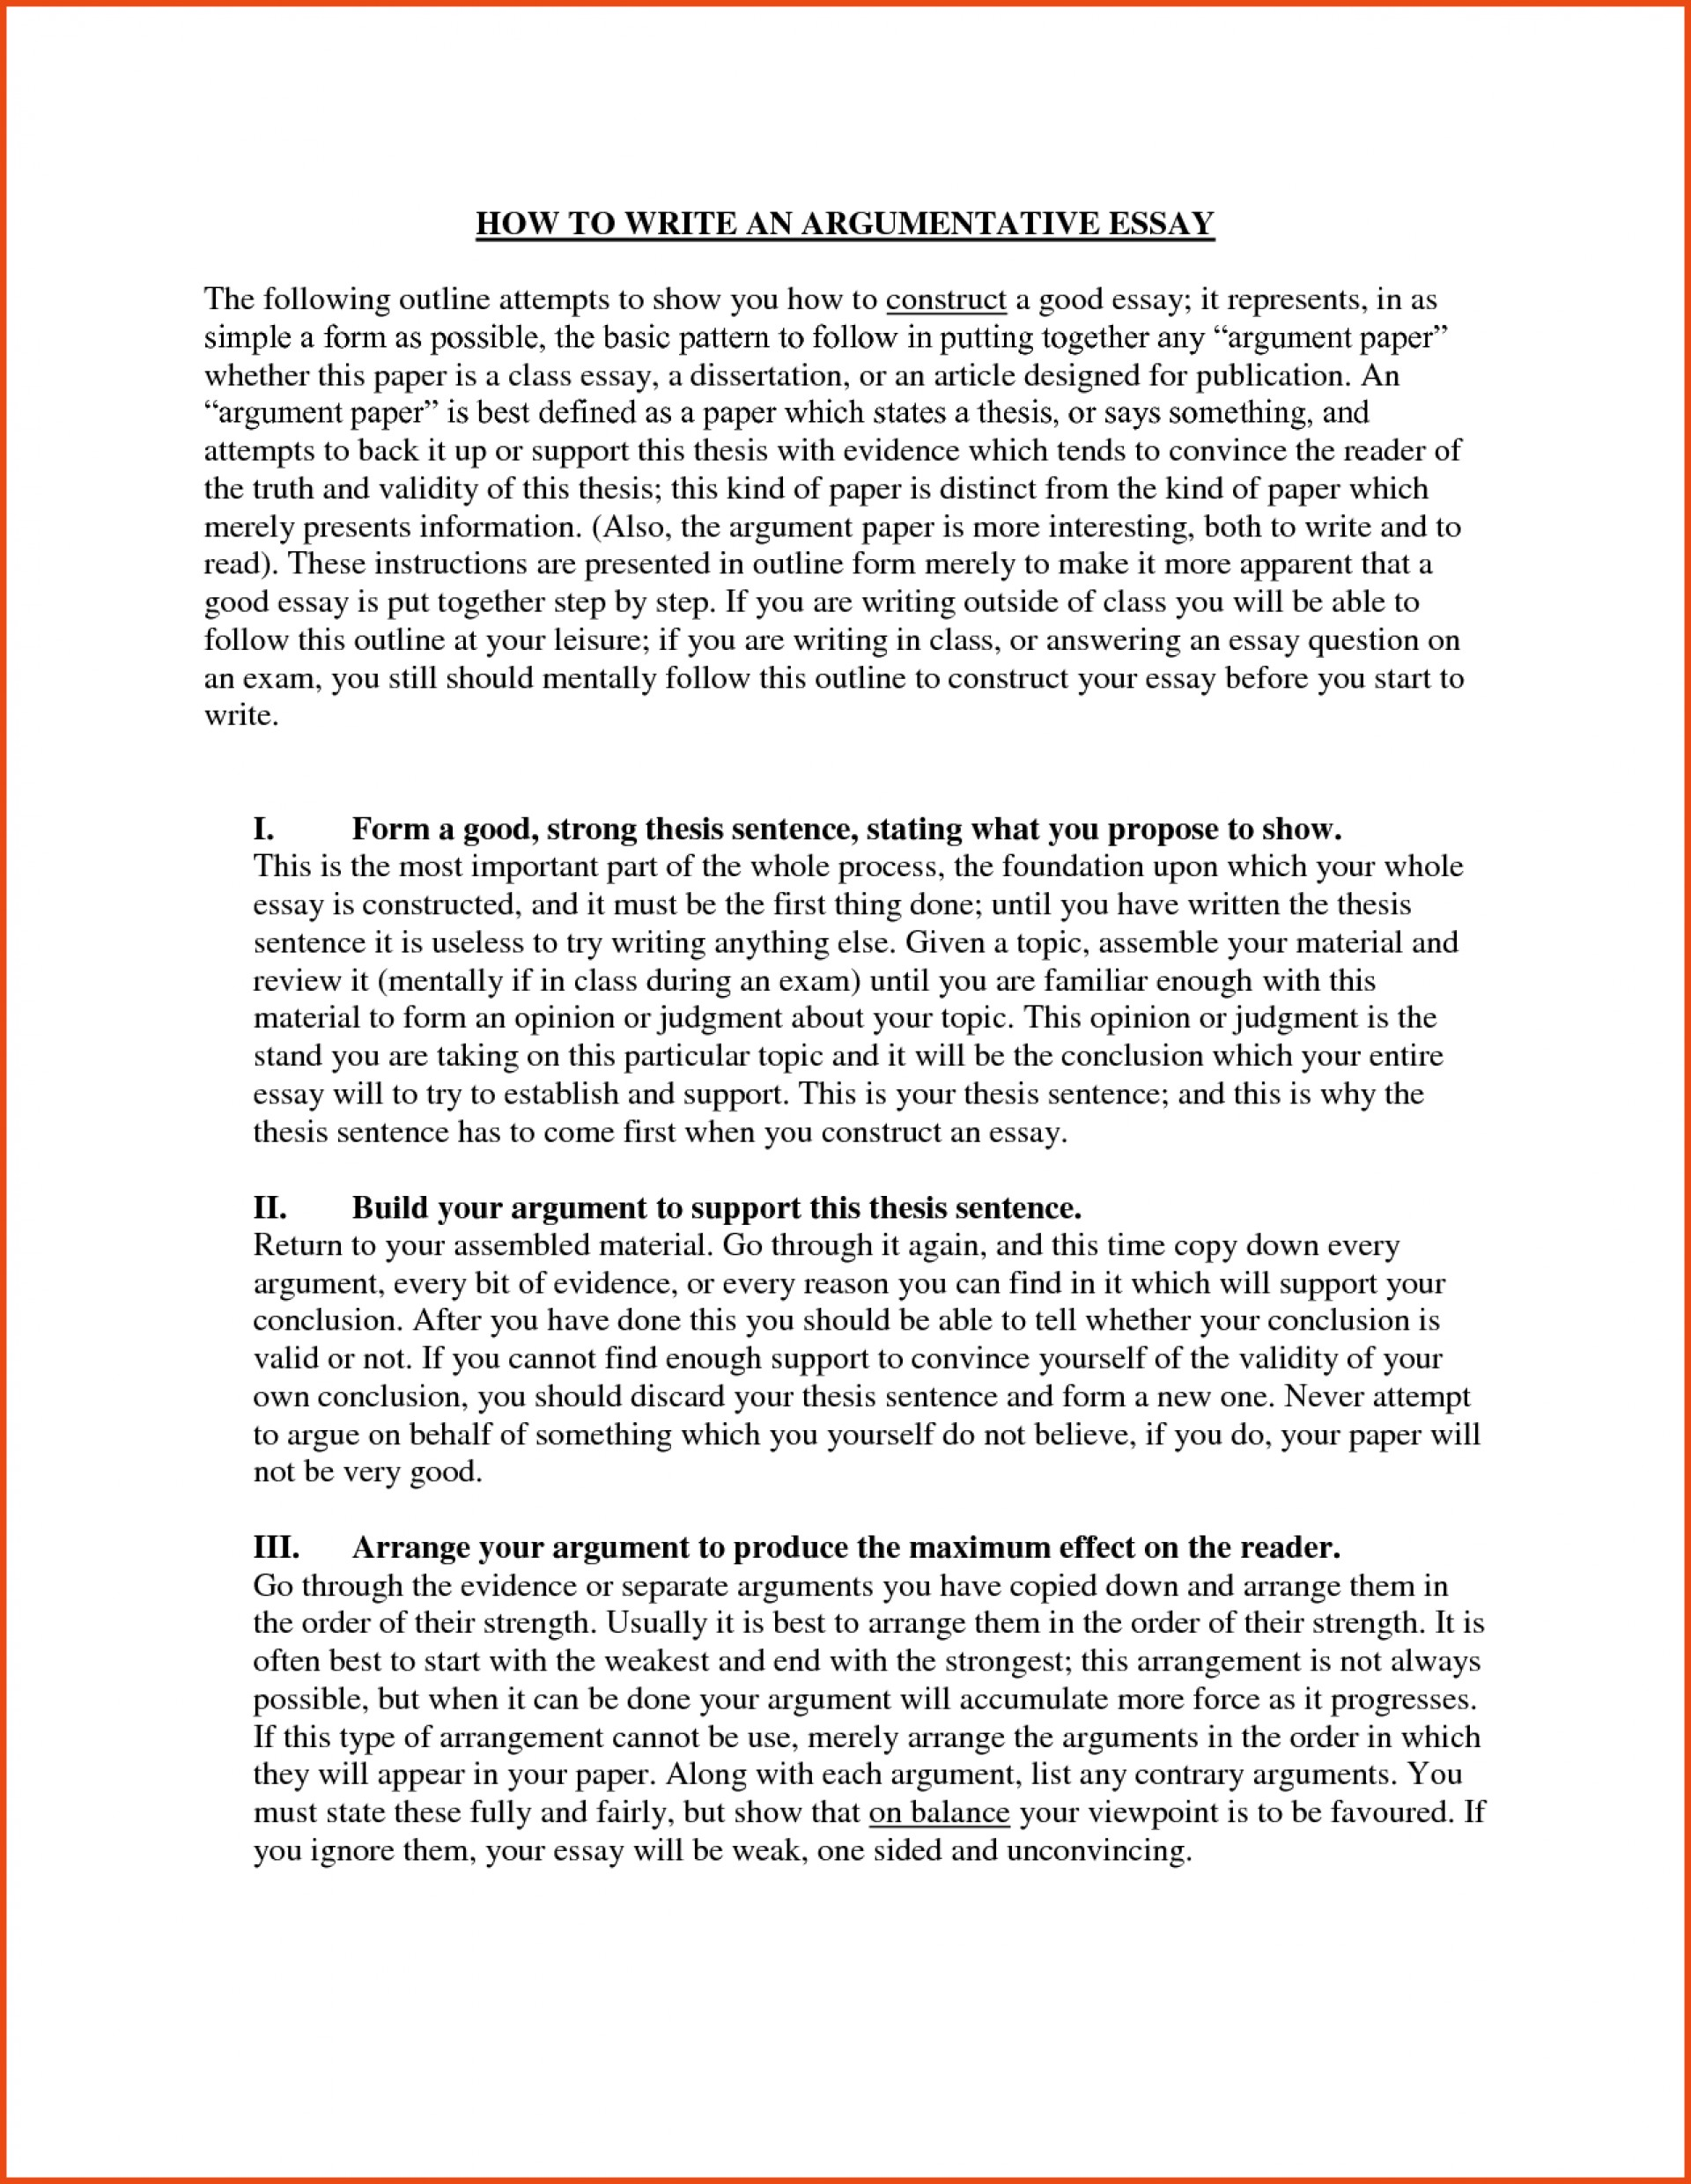 009 How To Start An About Me Essay Help Check Rush Examples Do I Good Way L Expository Academic Application Writing Argumentative Informative Analysis Conclusion Observation Of Dreaded Introduction Write Yourself Example Pdf 1920